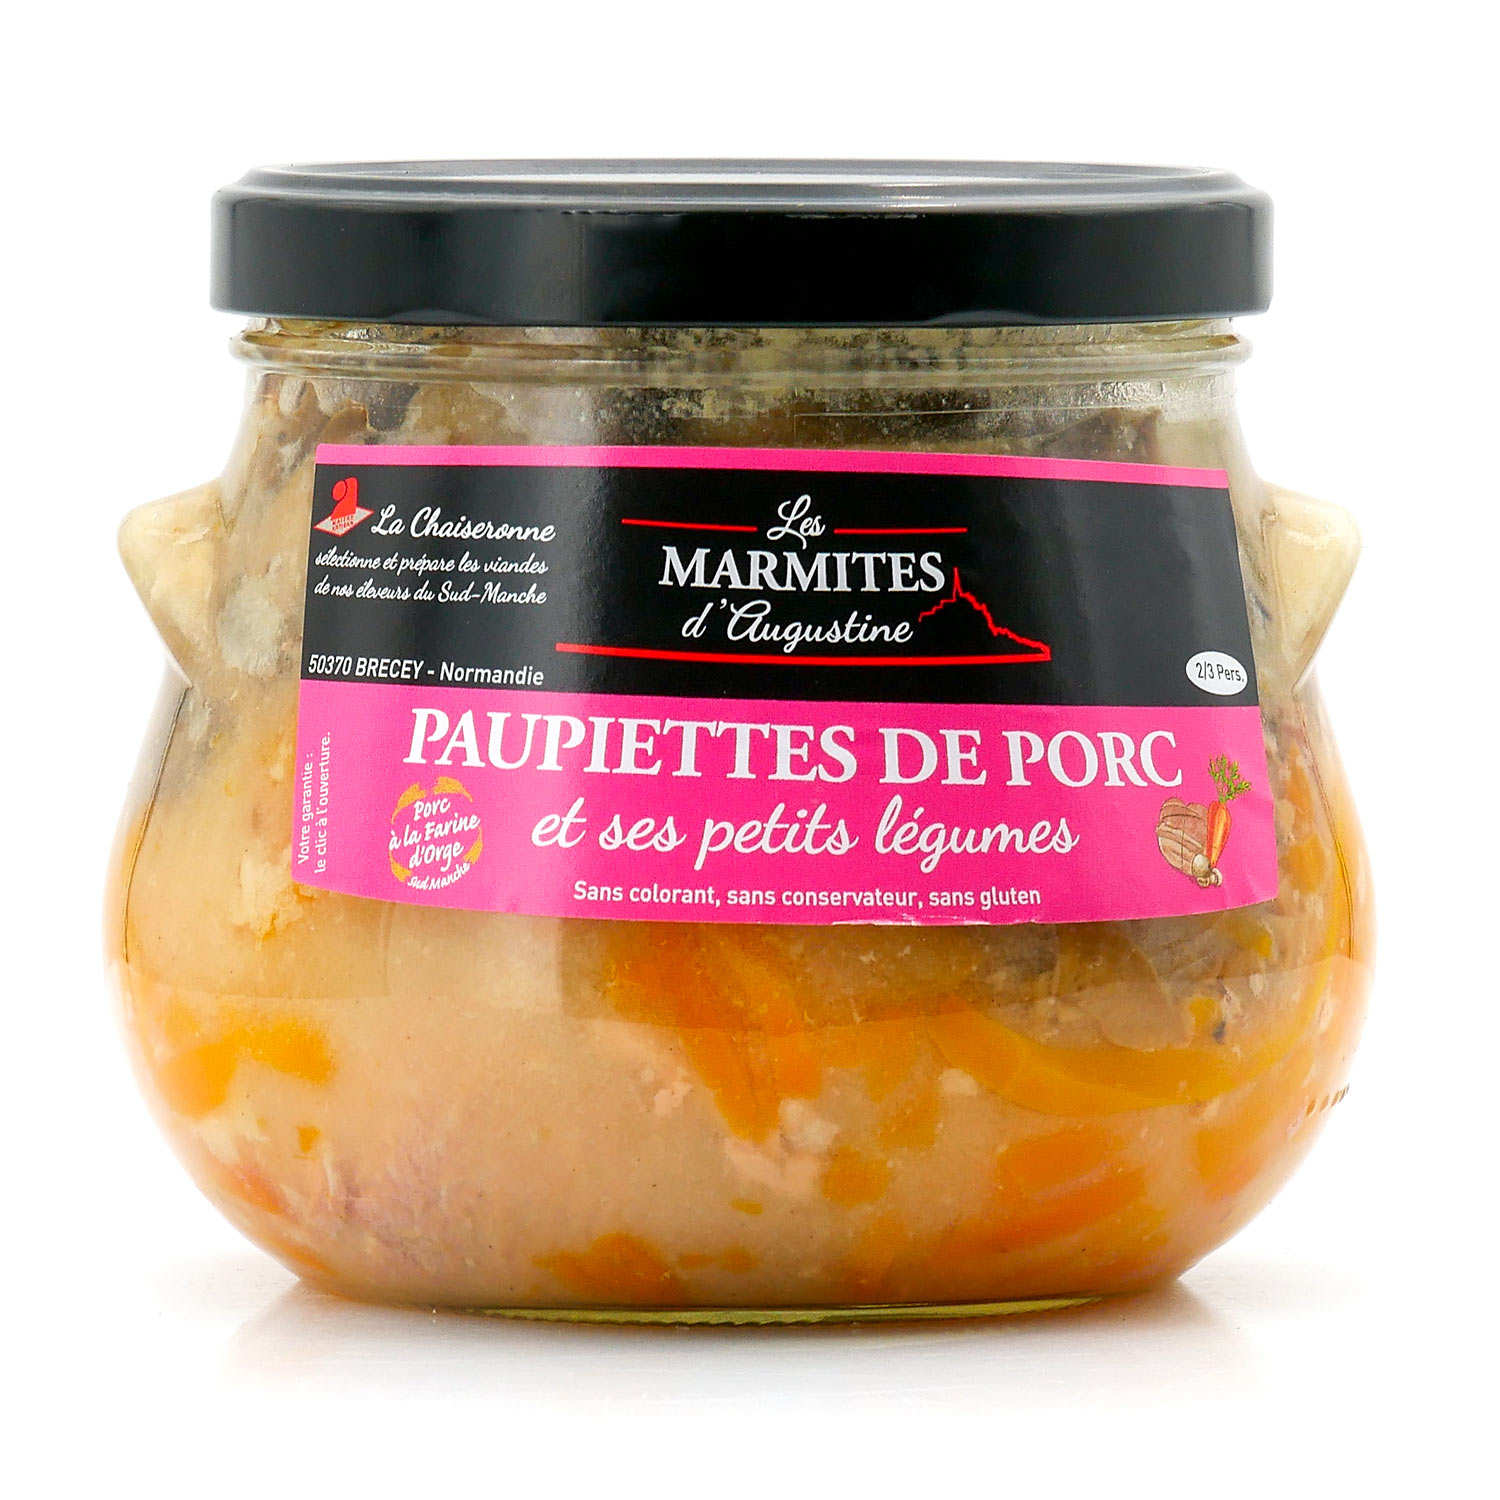 Veal Paupiettes from Normandy